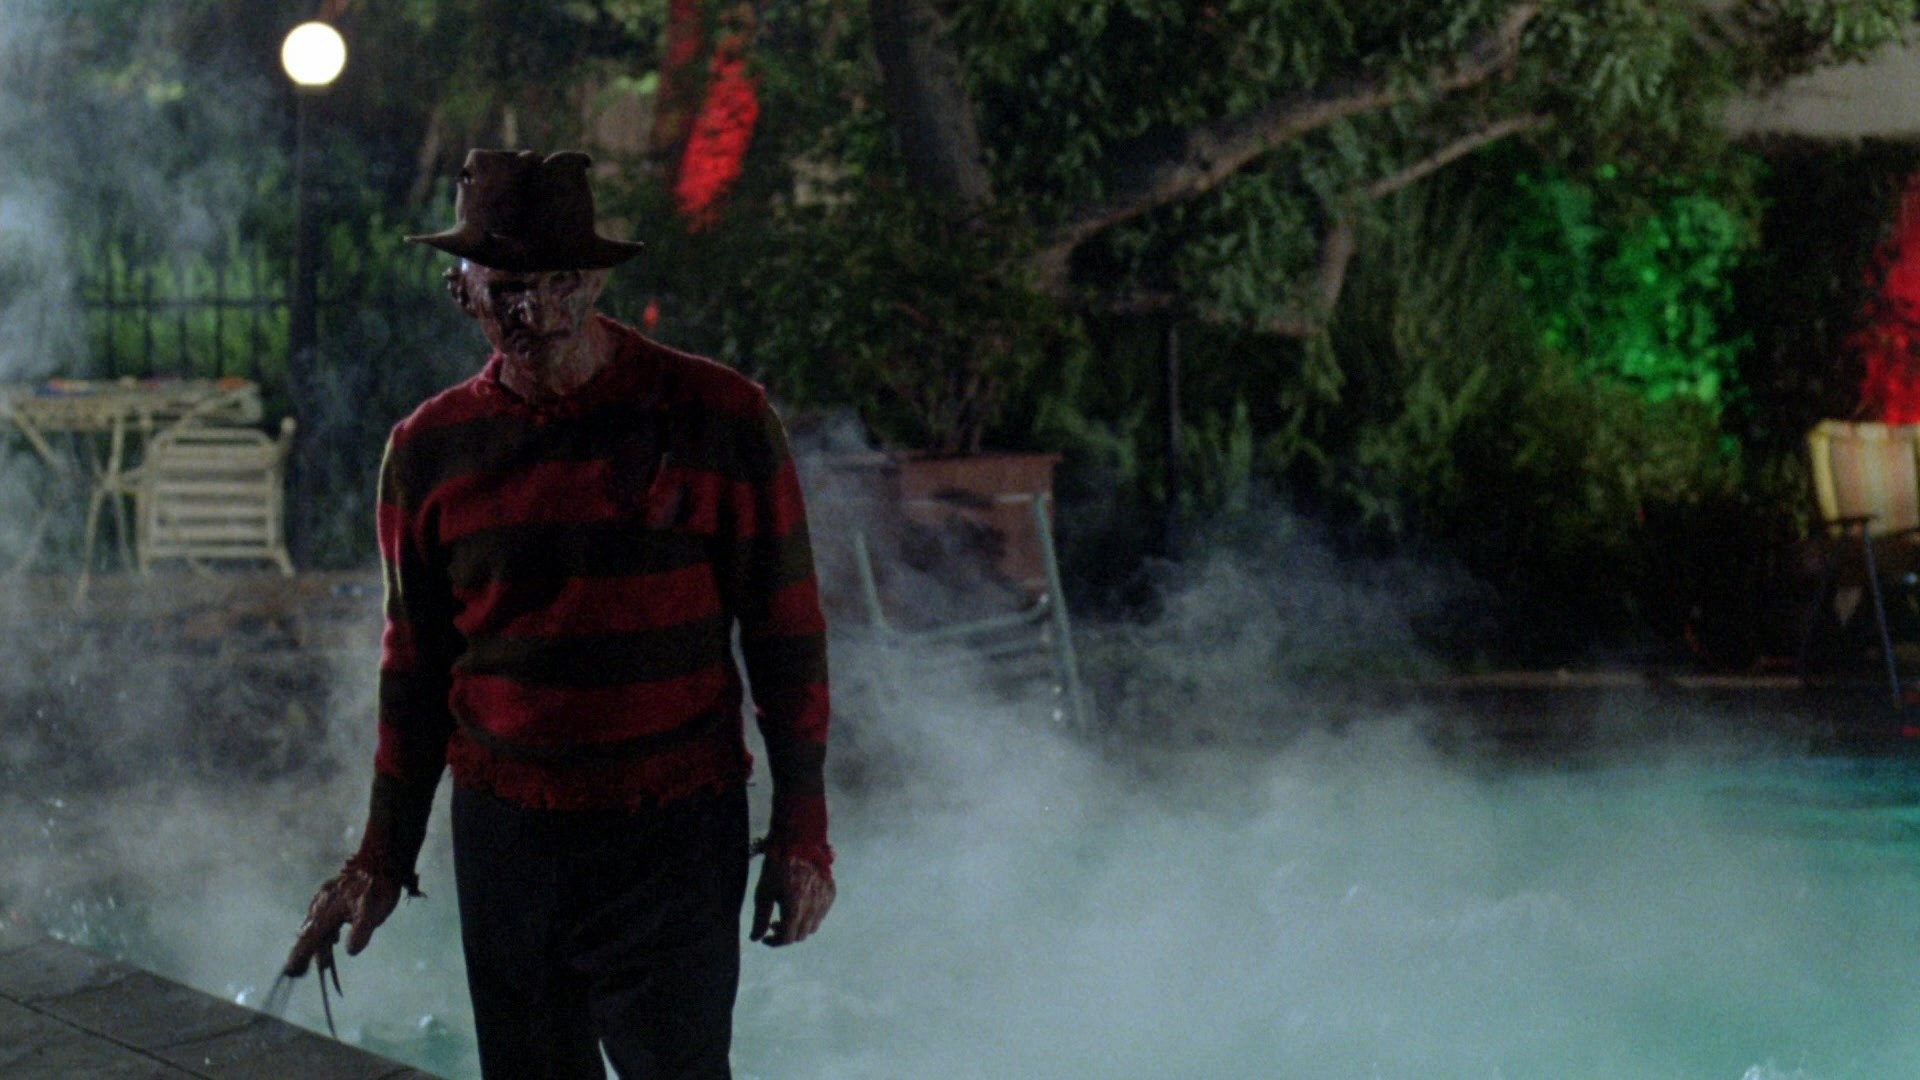 1920x1080-free-screensaver-for-a-nightmare-on-elm-street-wallpaper-wpc580757